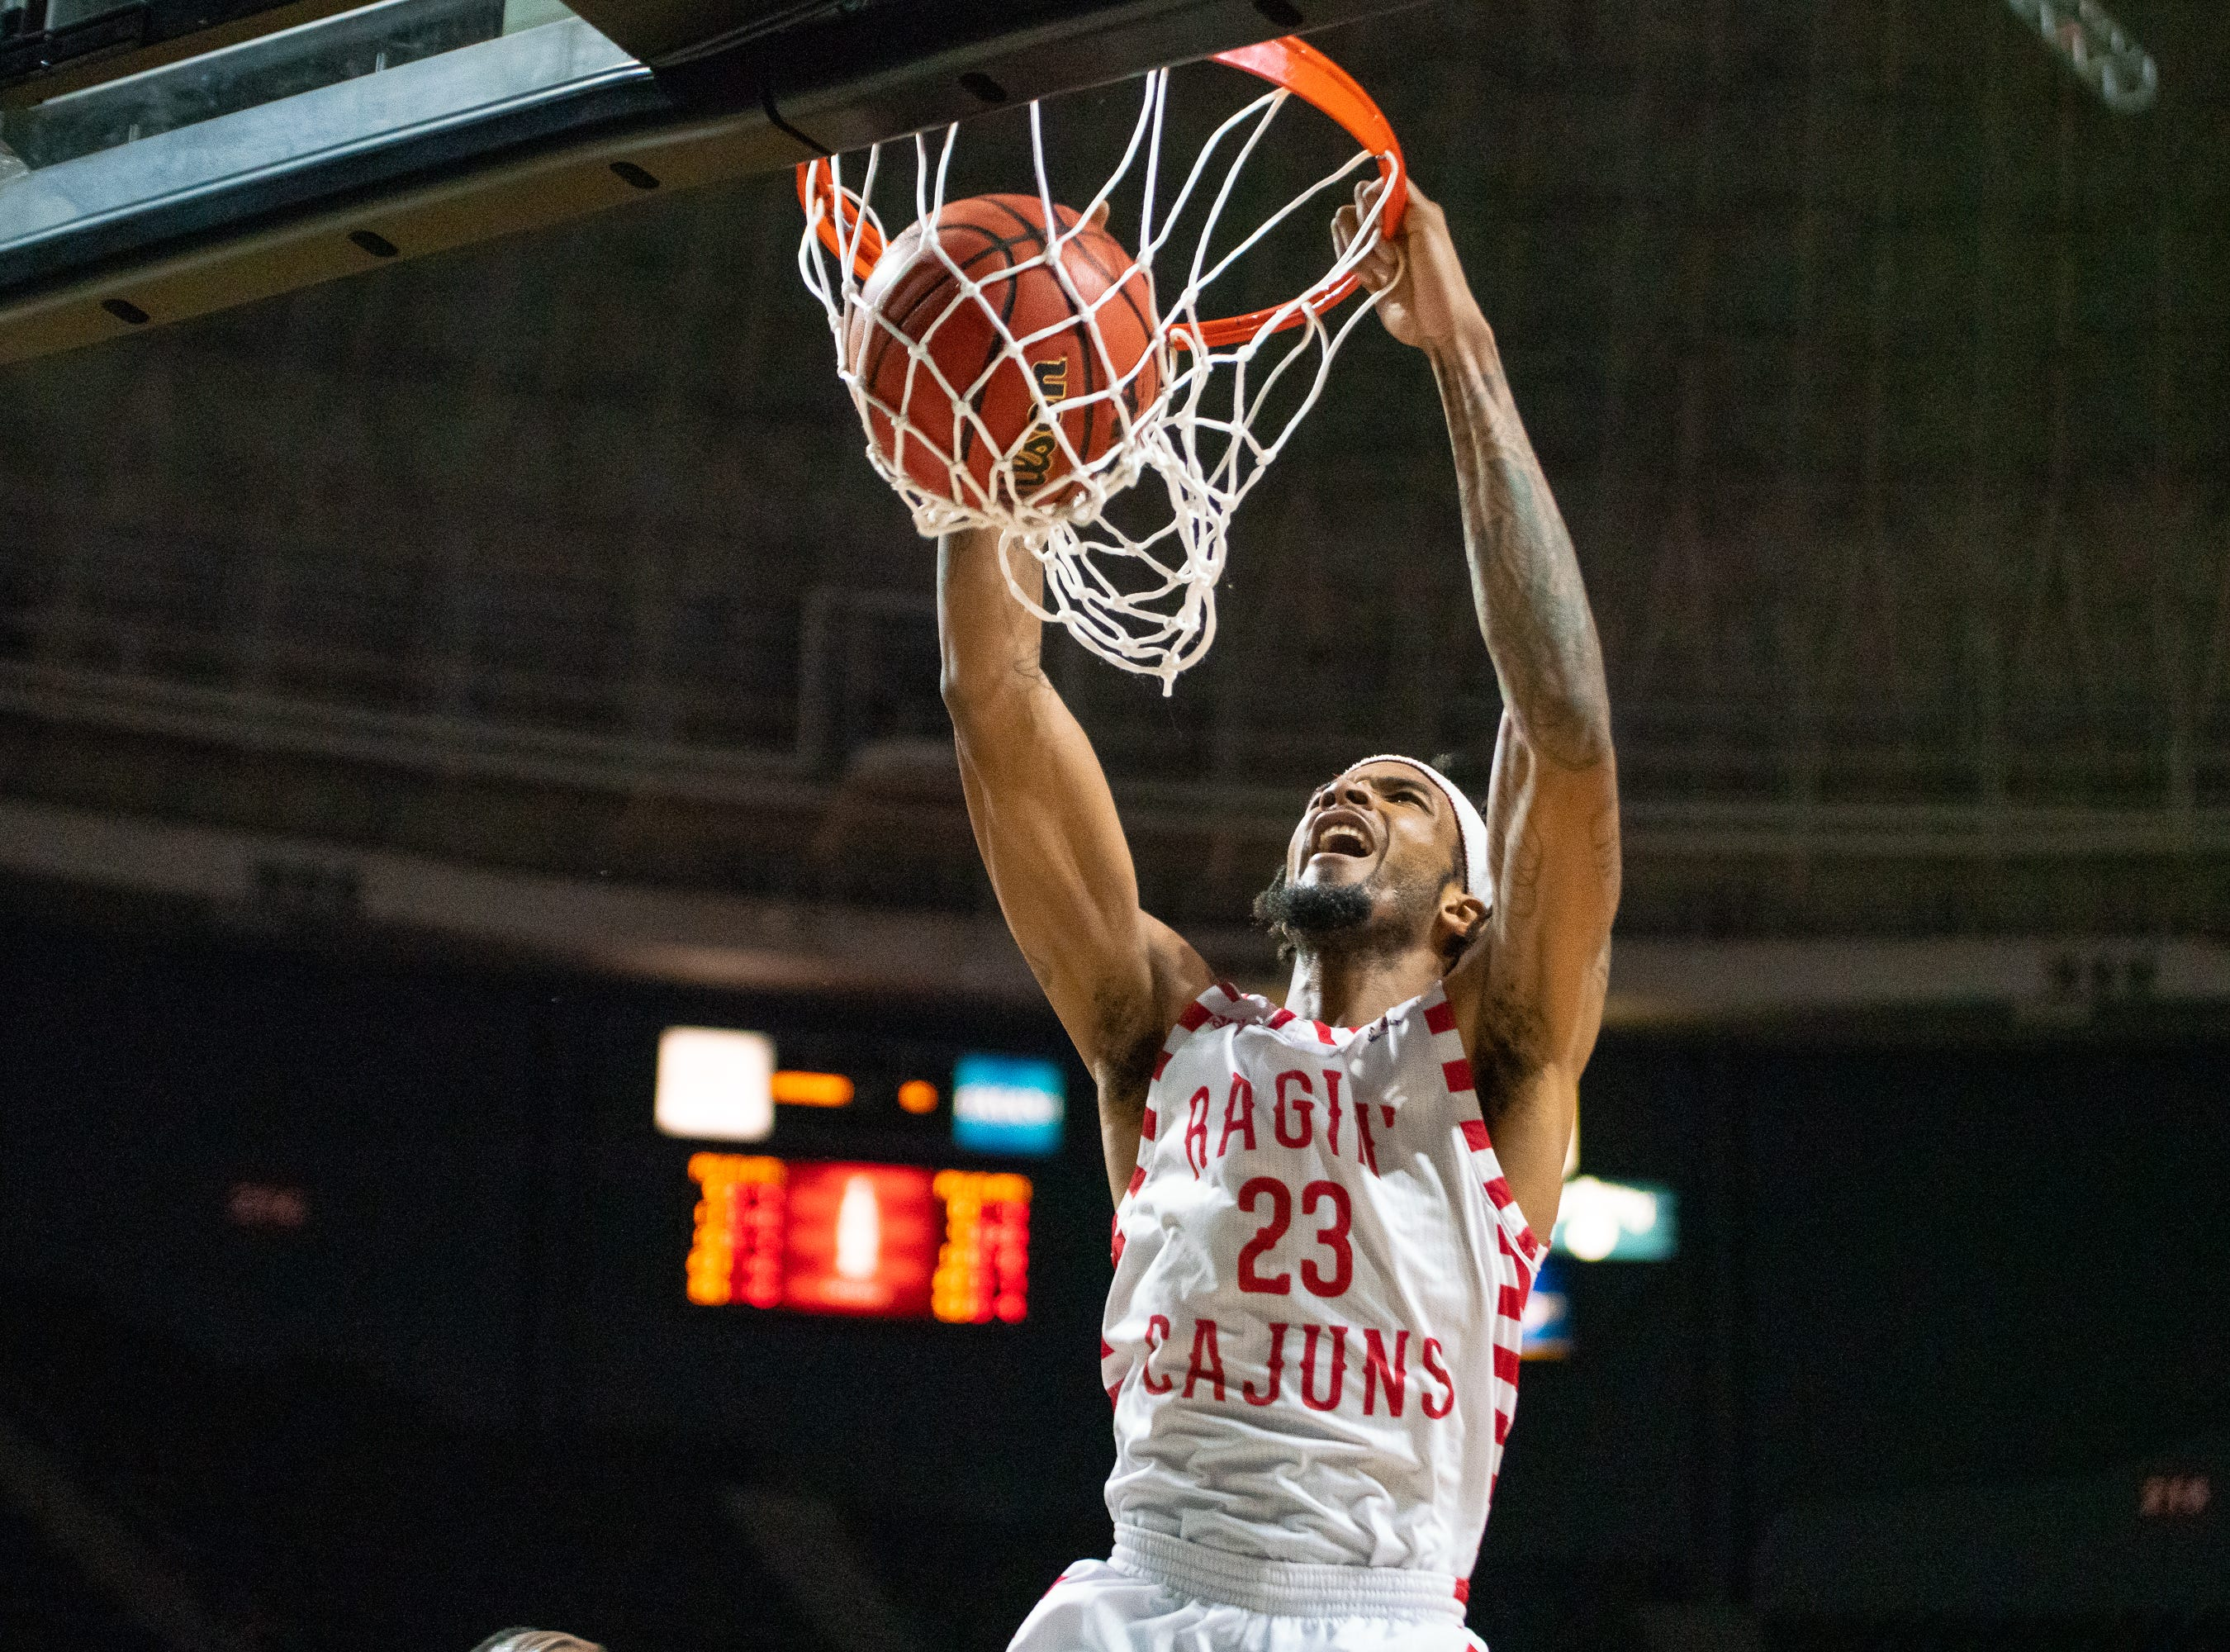 UL's JaKeenan Gant scores a dunk during the play as the Ragin' Cajuns take on the Georgia Southern Eagles at the Cajundome on Feb. 6, 2019.